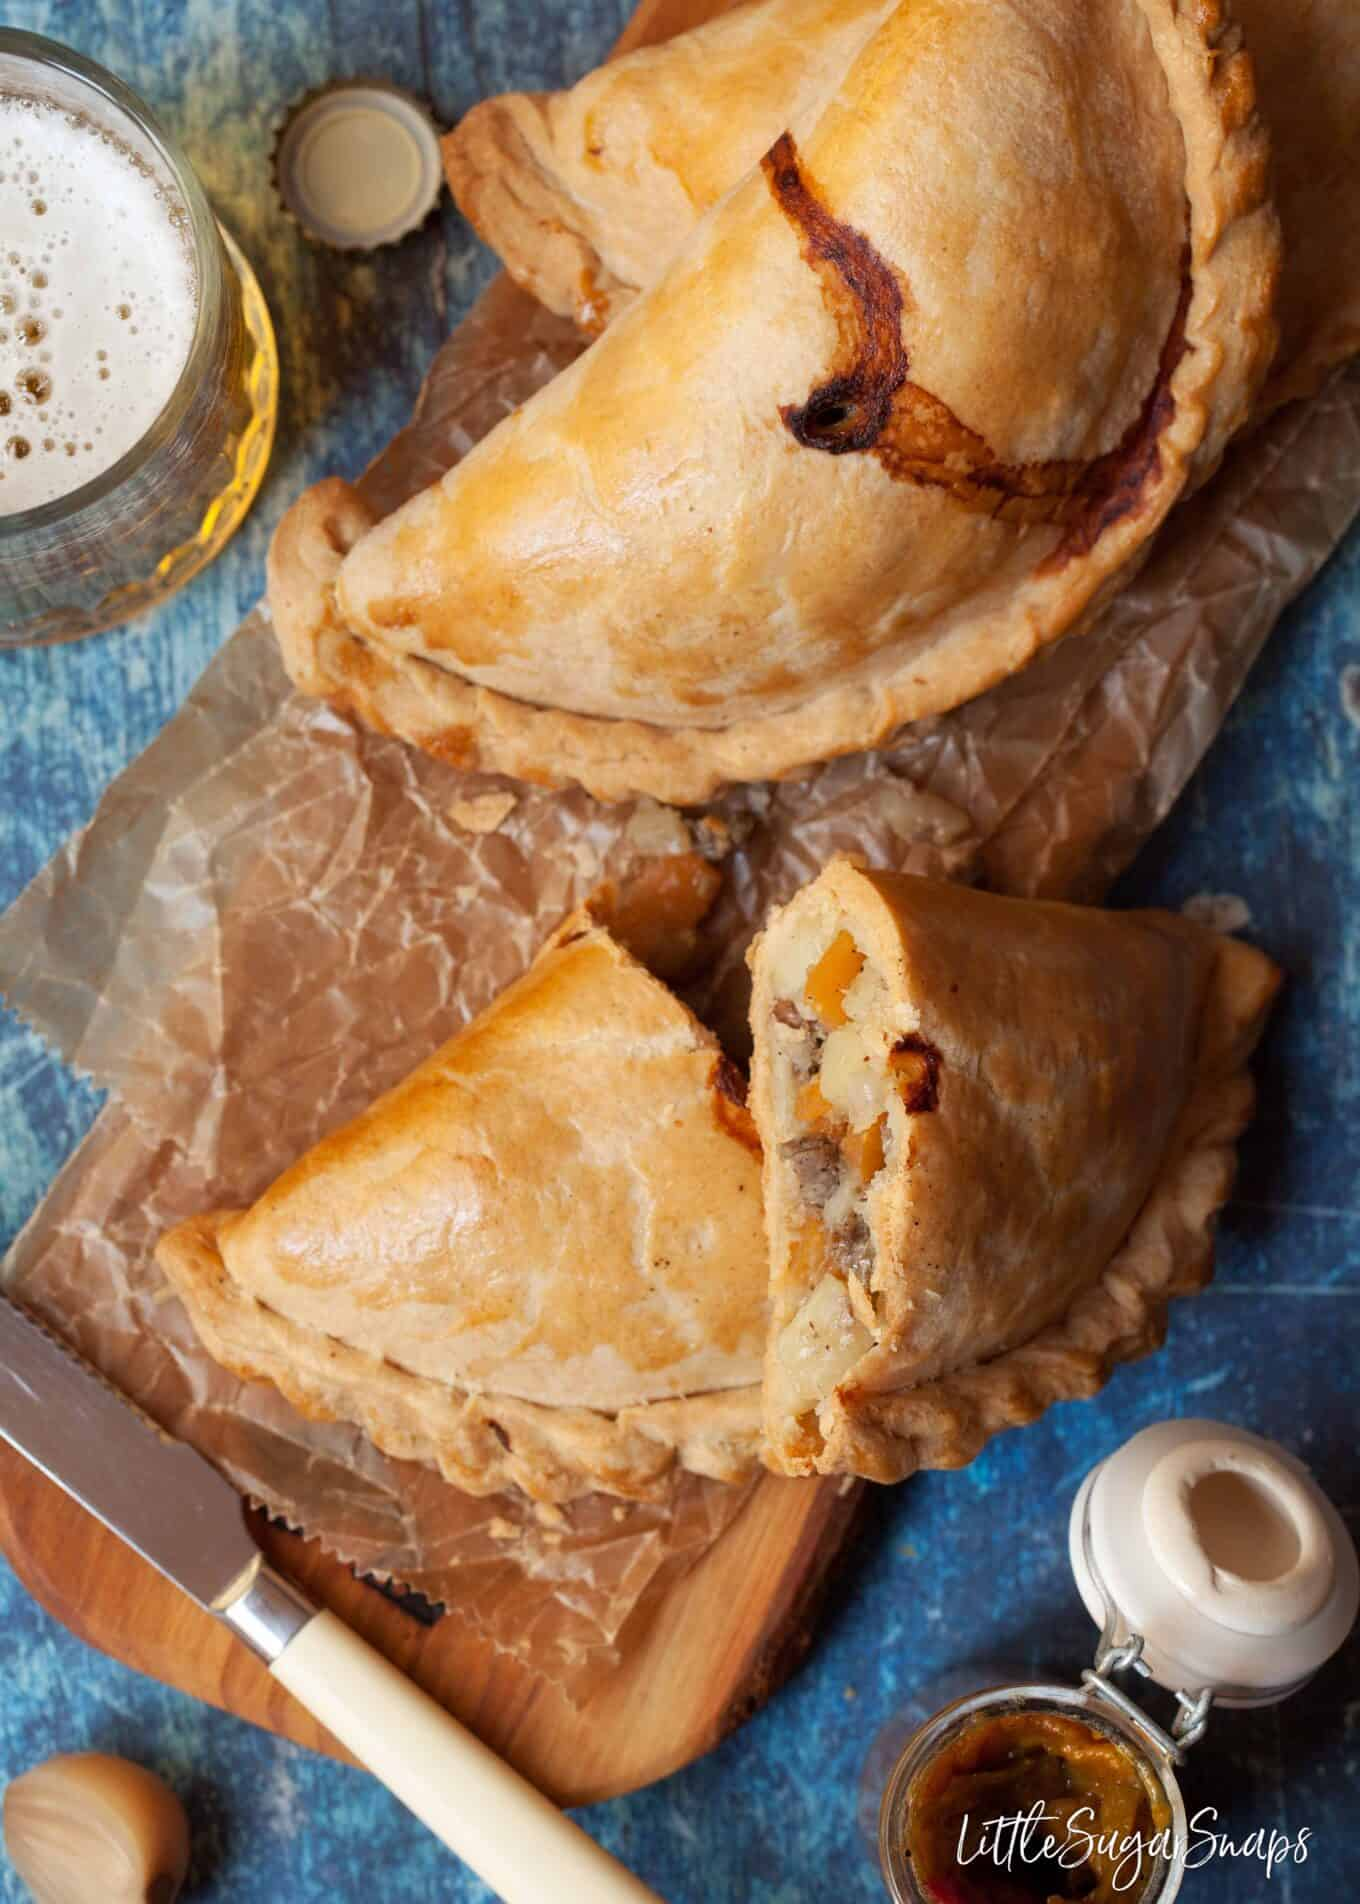 Beef pasties - one cut open to reveal the filling.